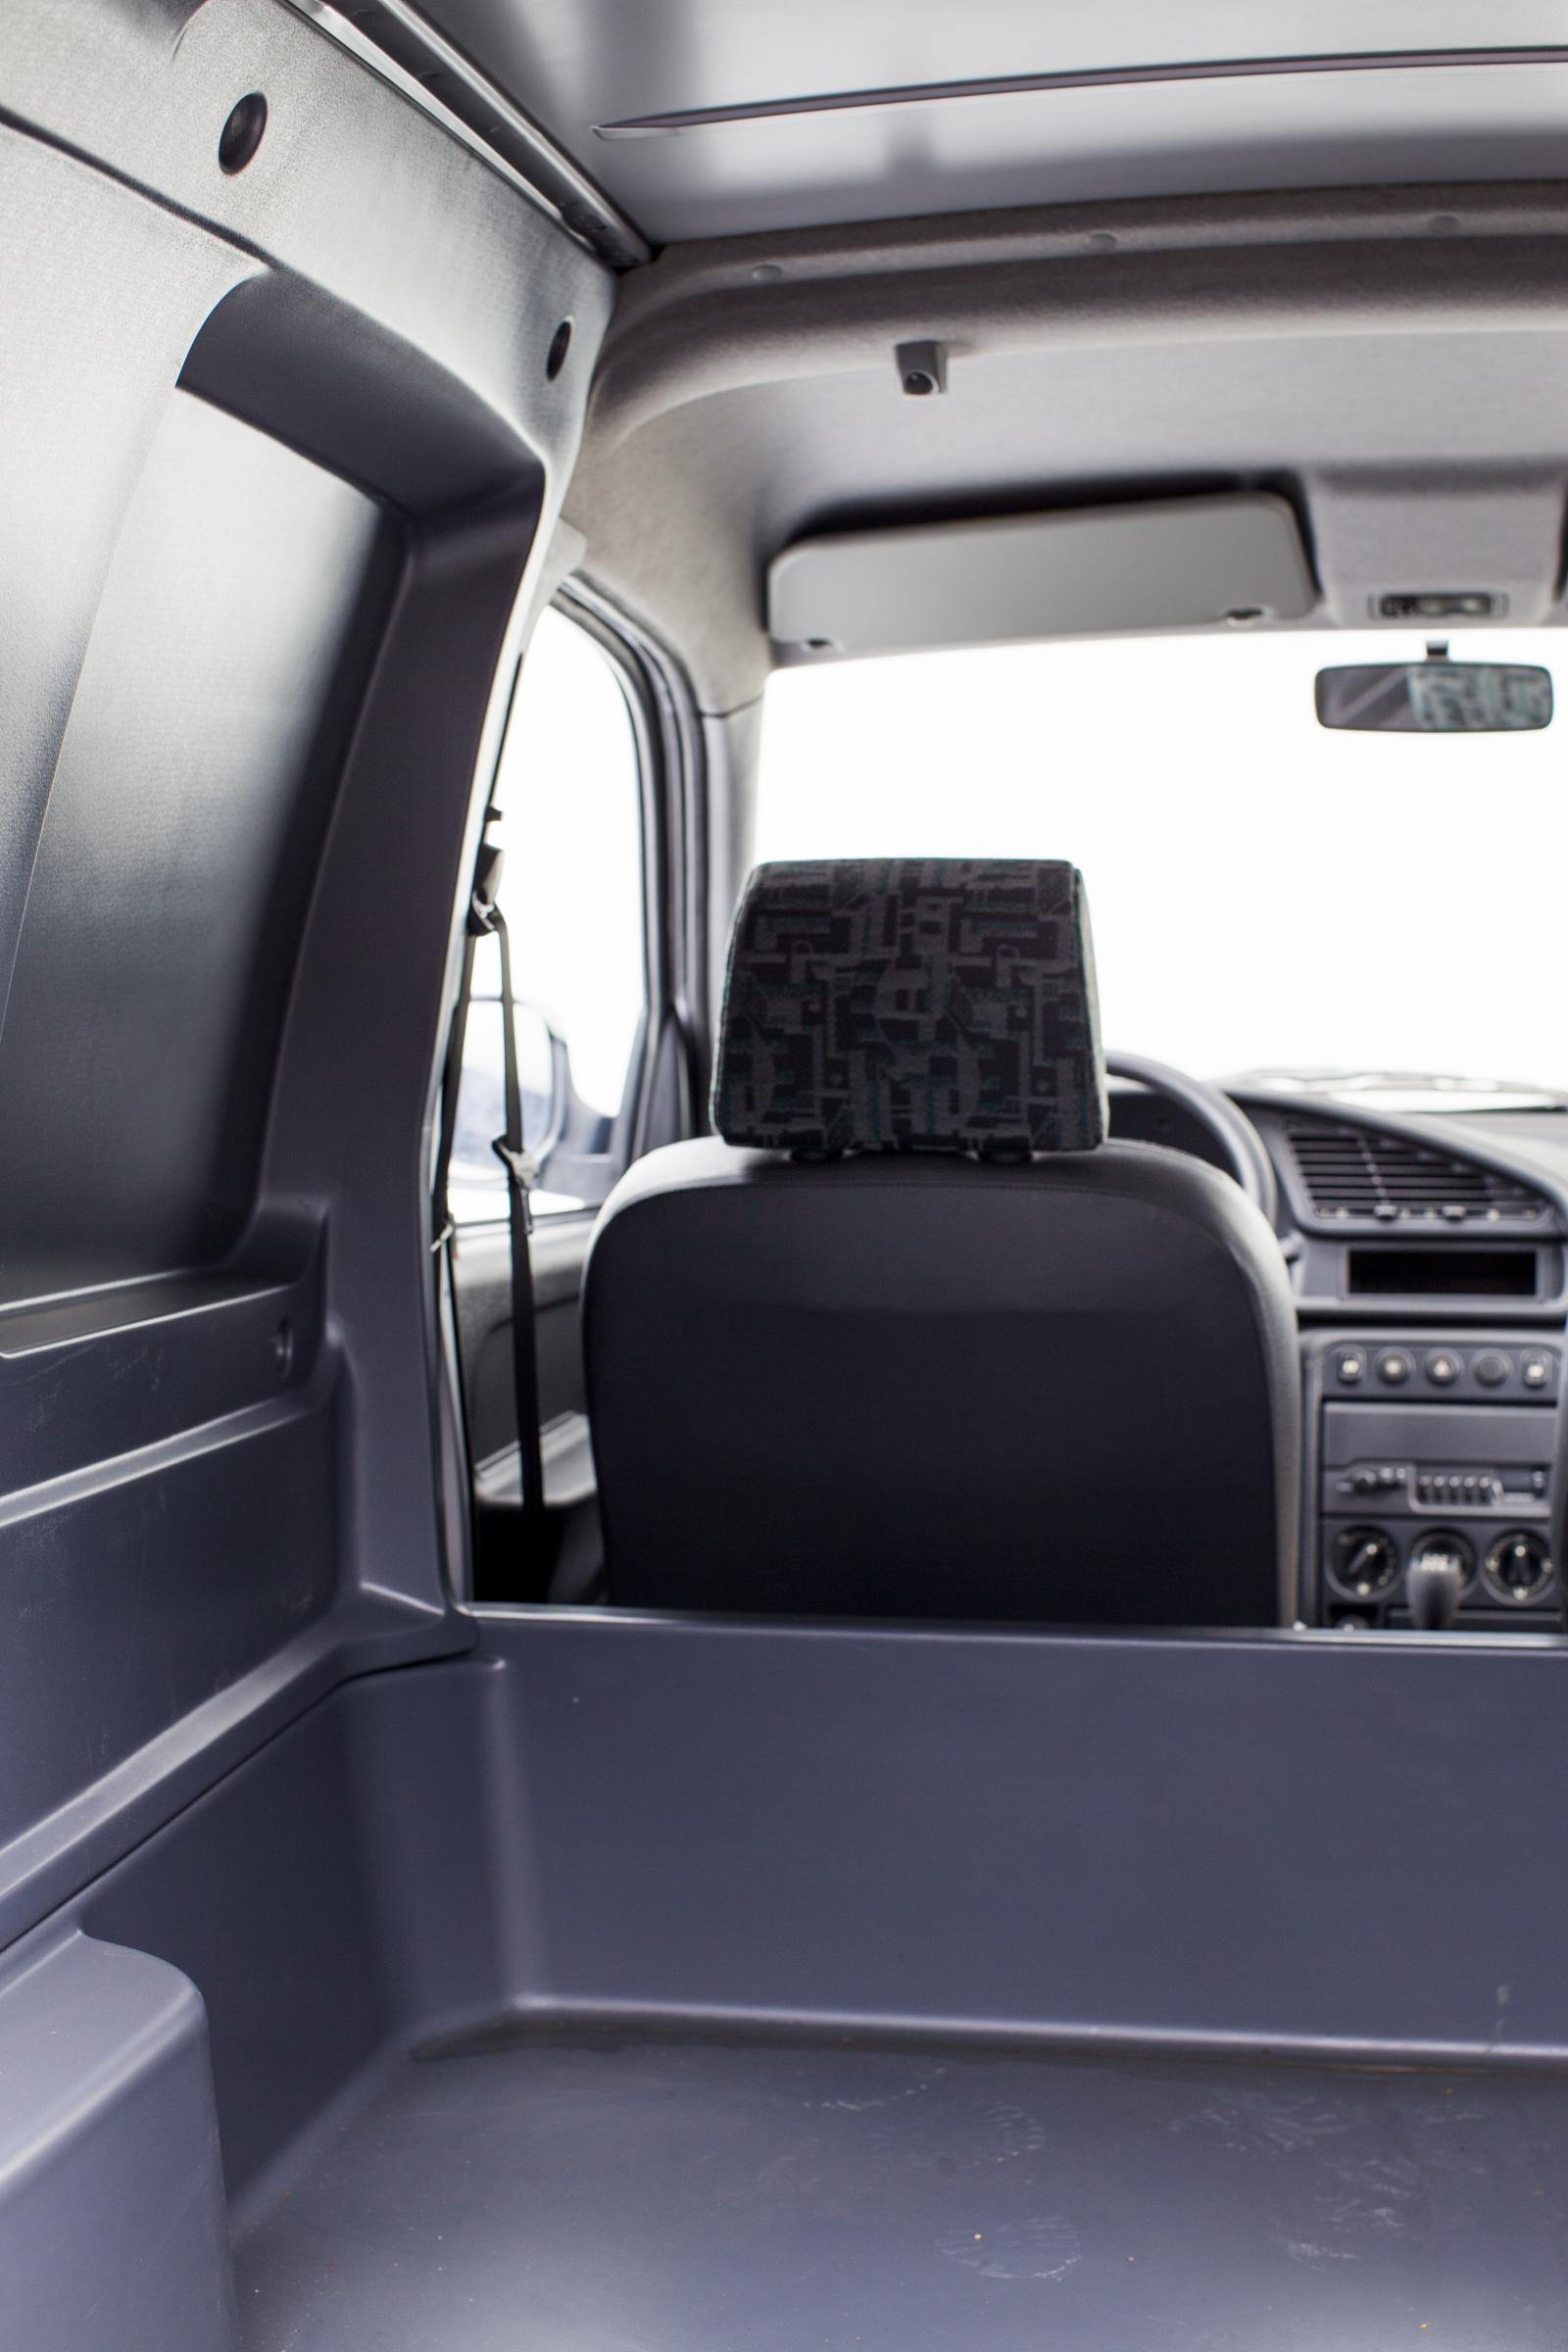 Inside Berlingo 1